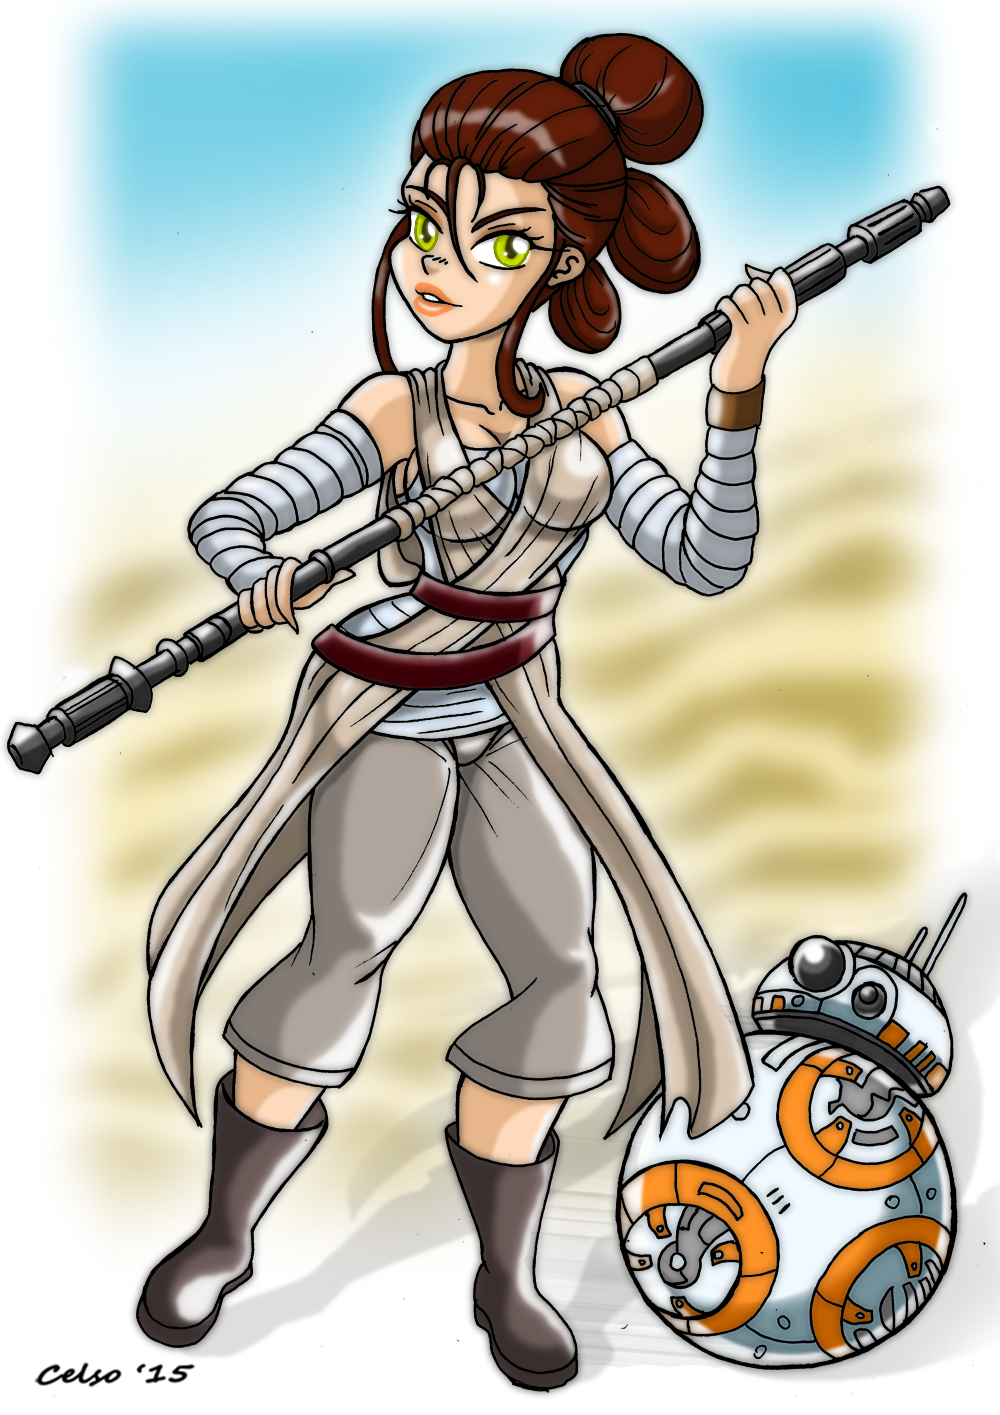 rey and bb8 star wars vii the force awakens by celso33